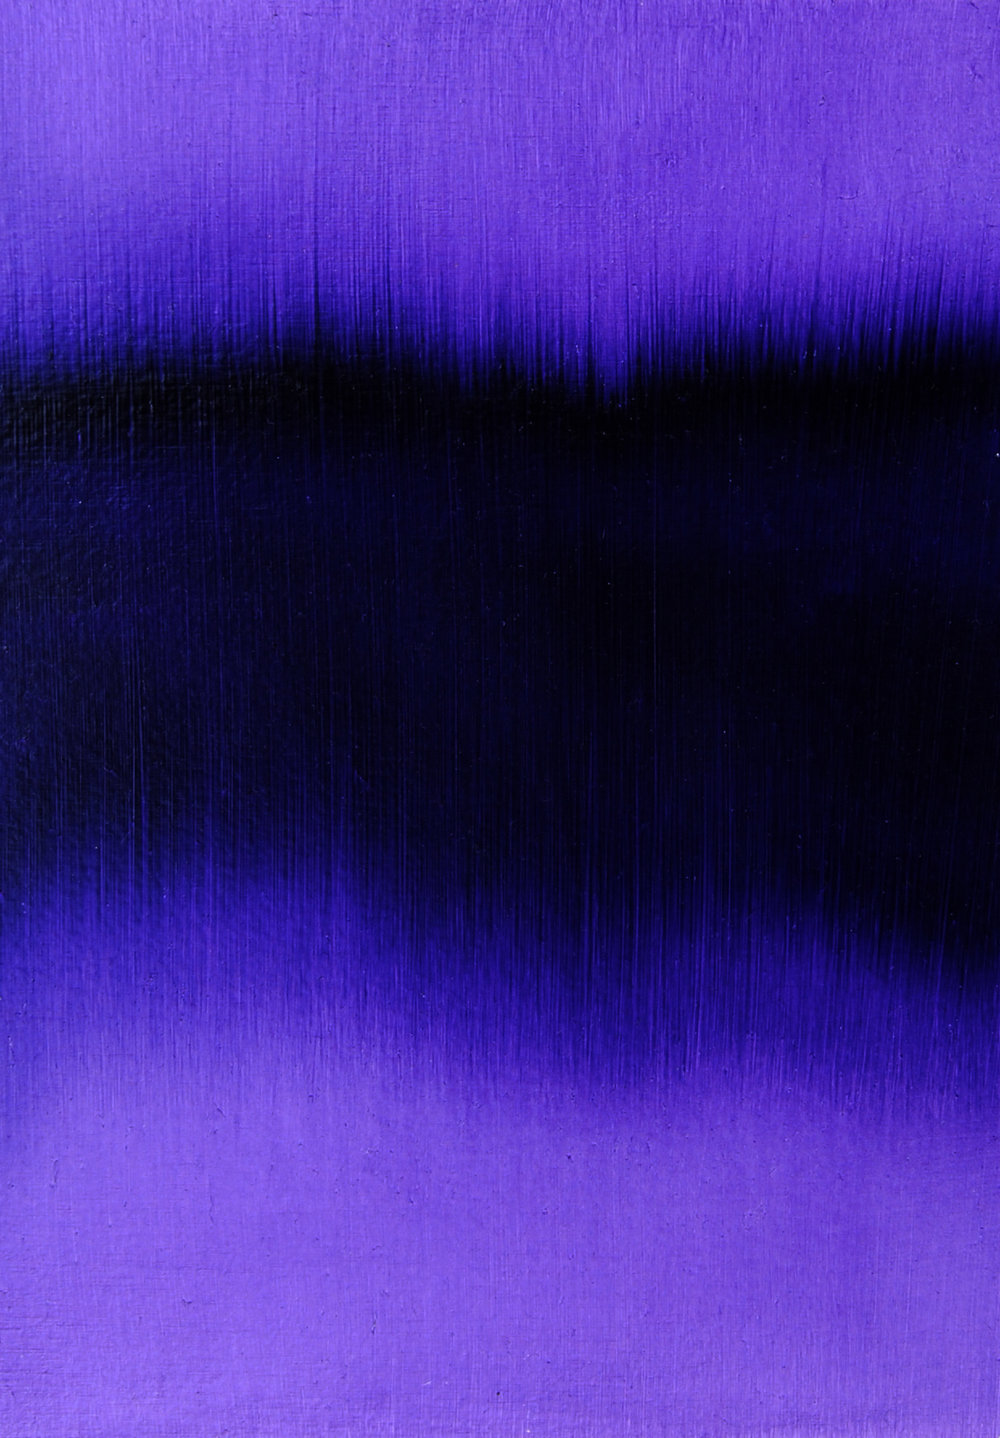 Purple Noise